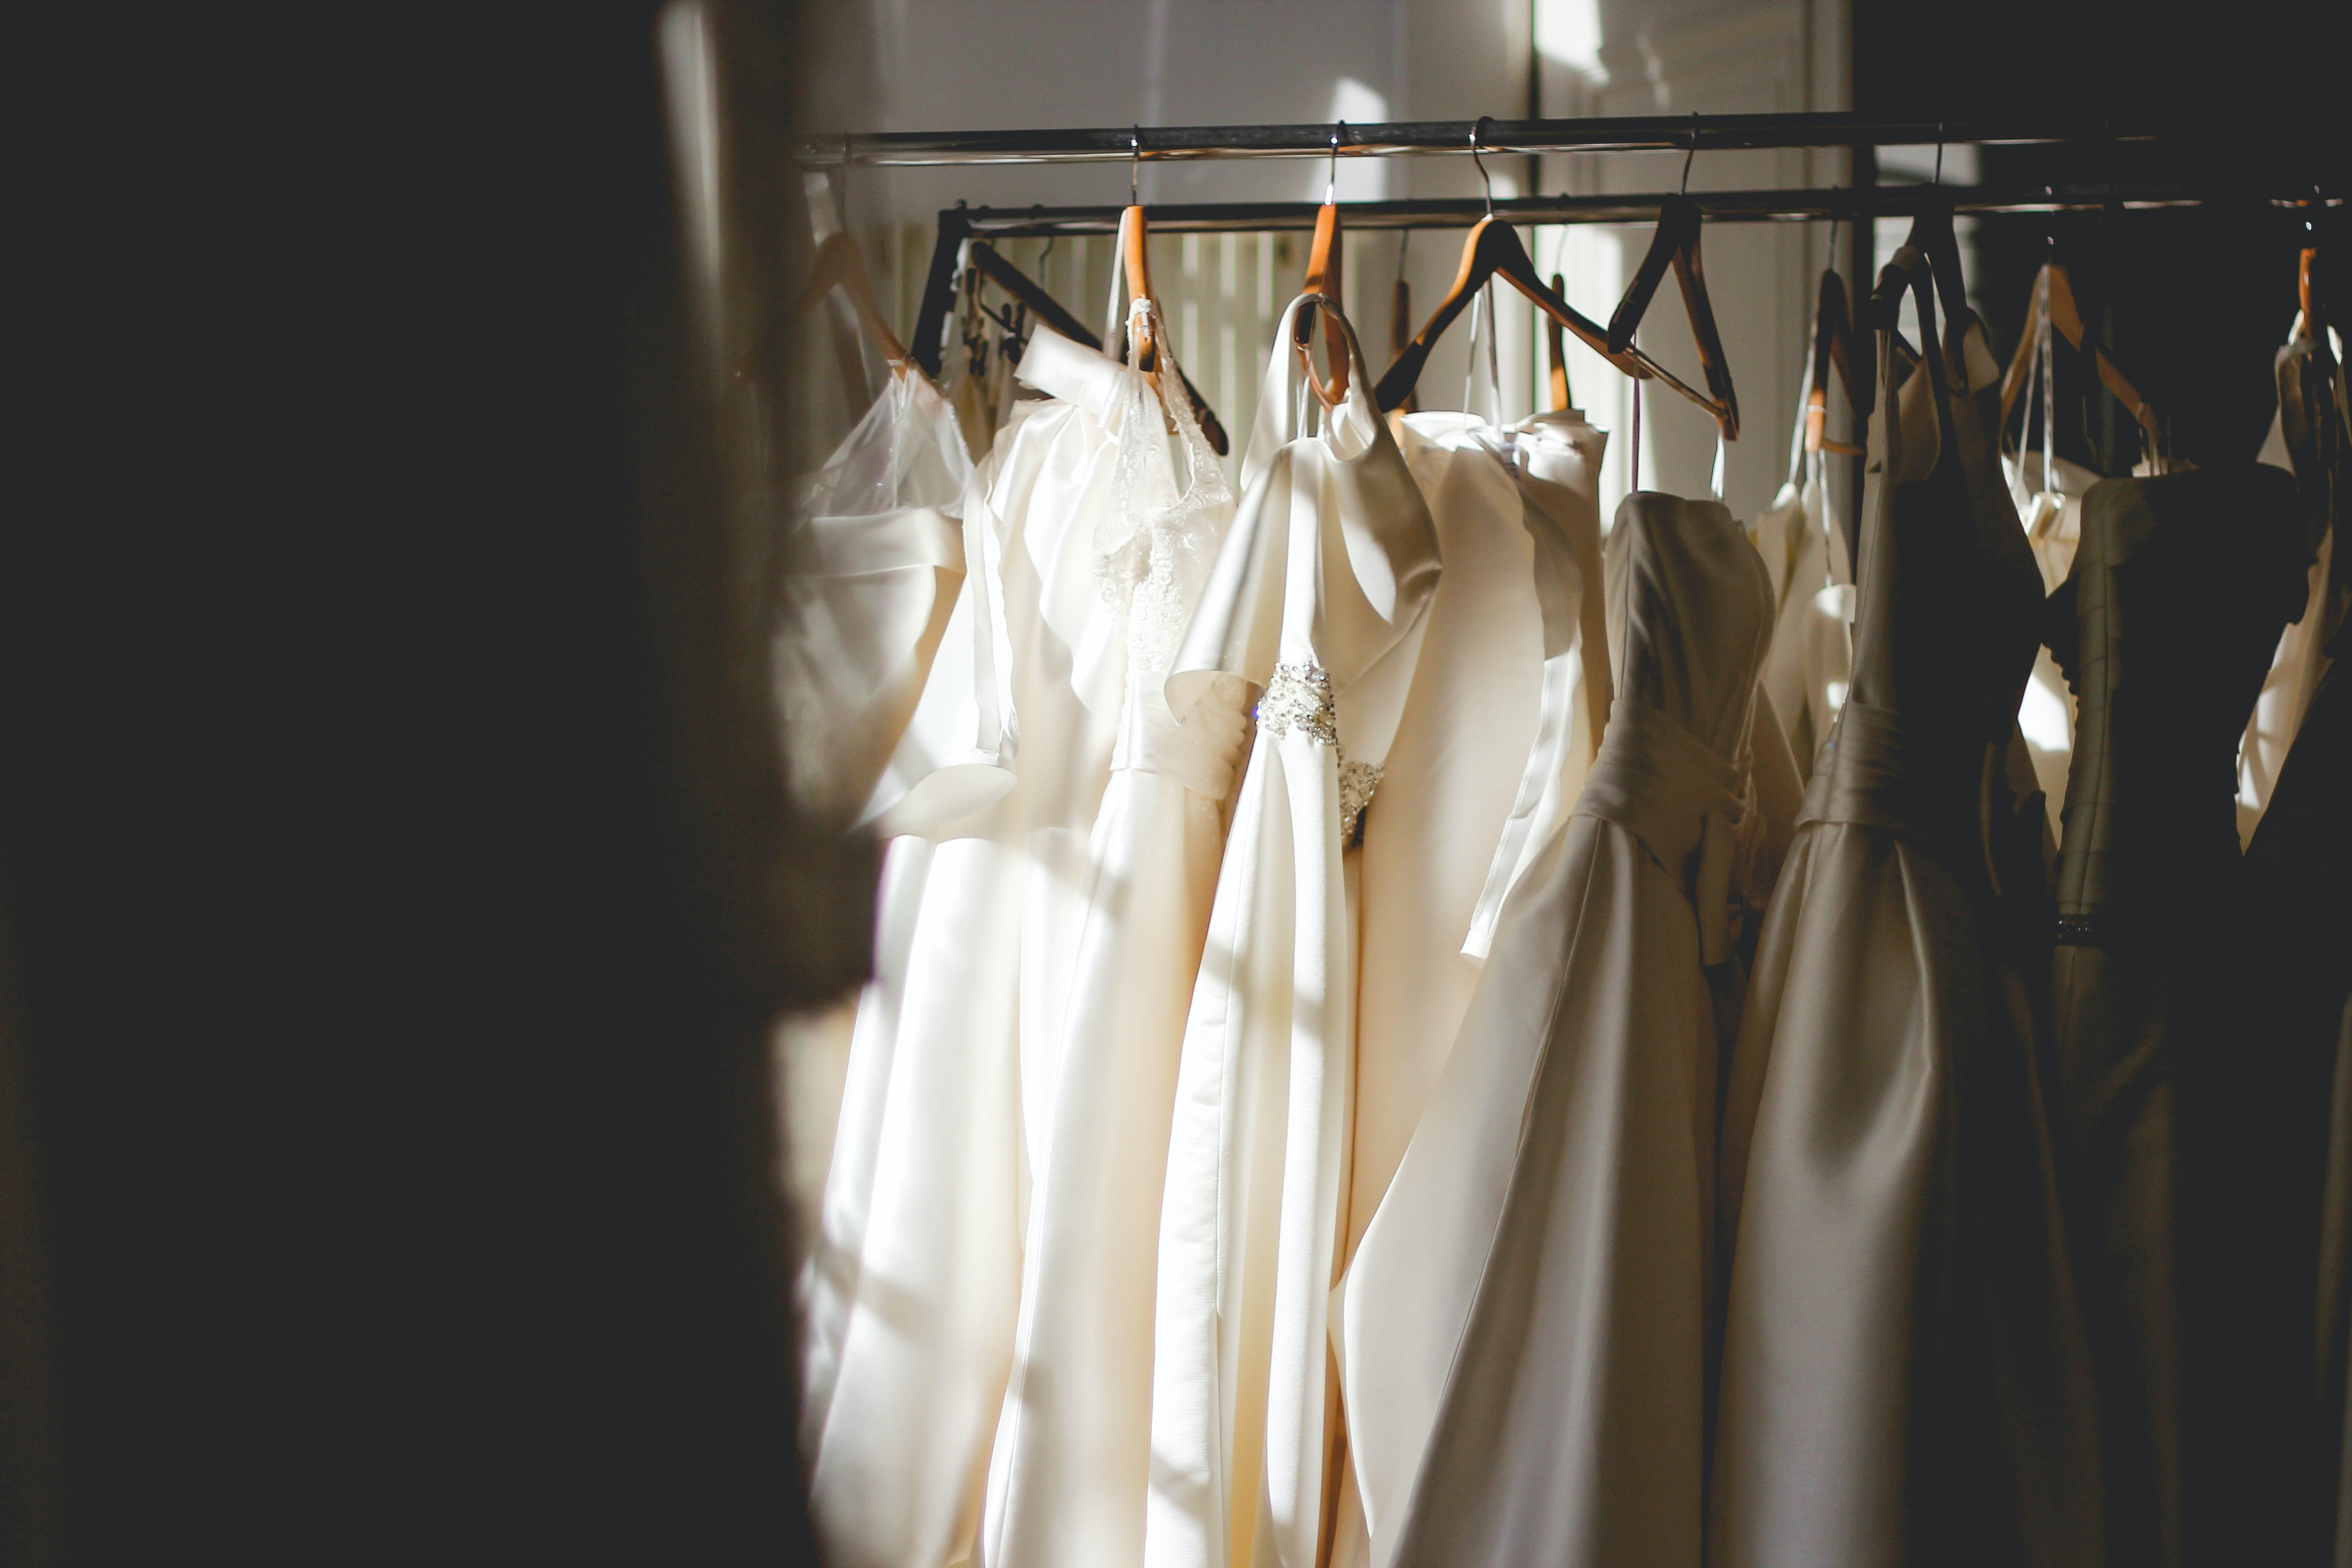 five women's white hanged gowns